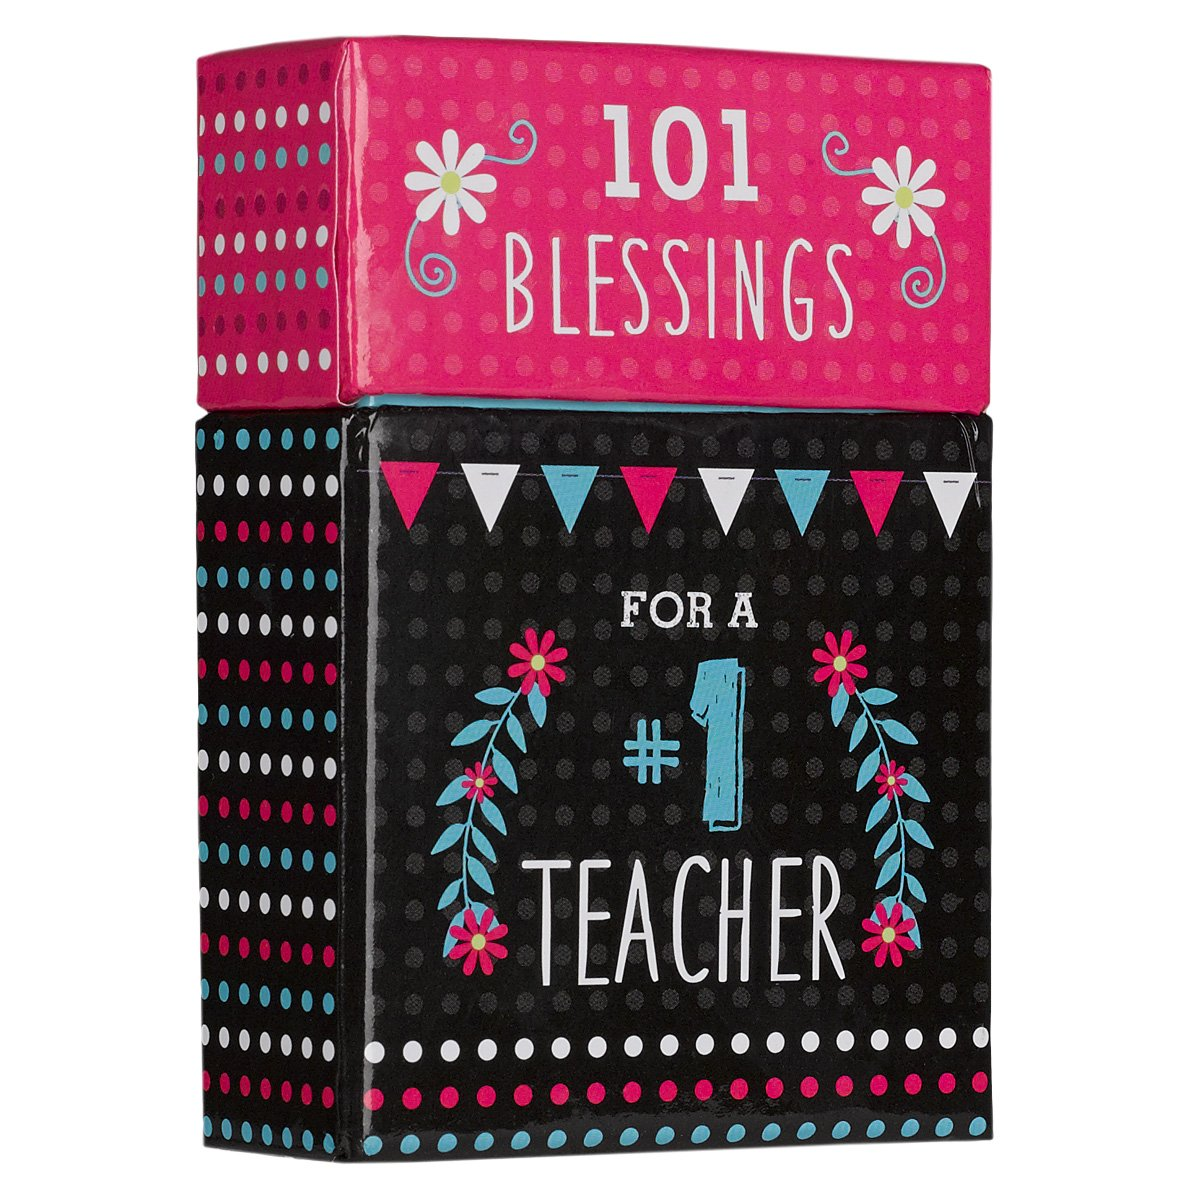 101 Blessings Teacher Cards Box